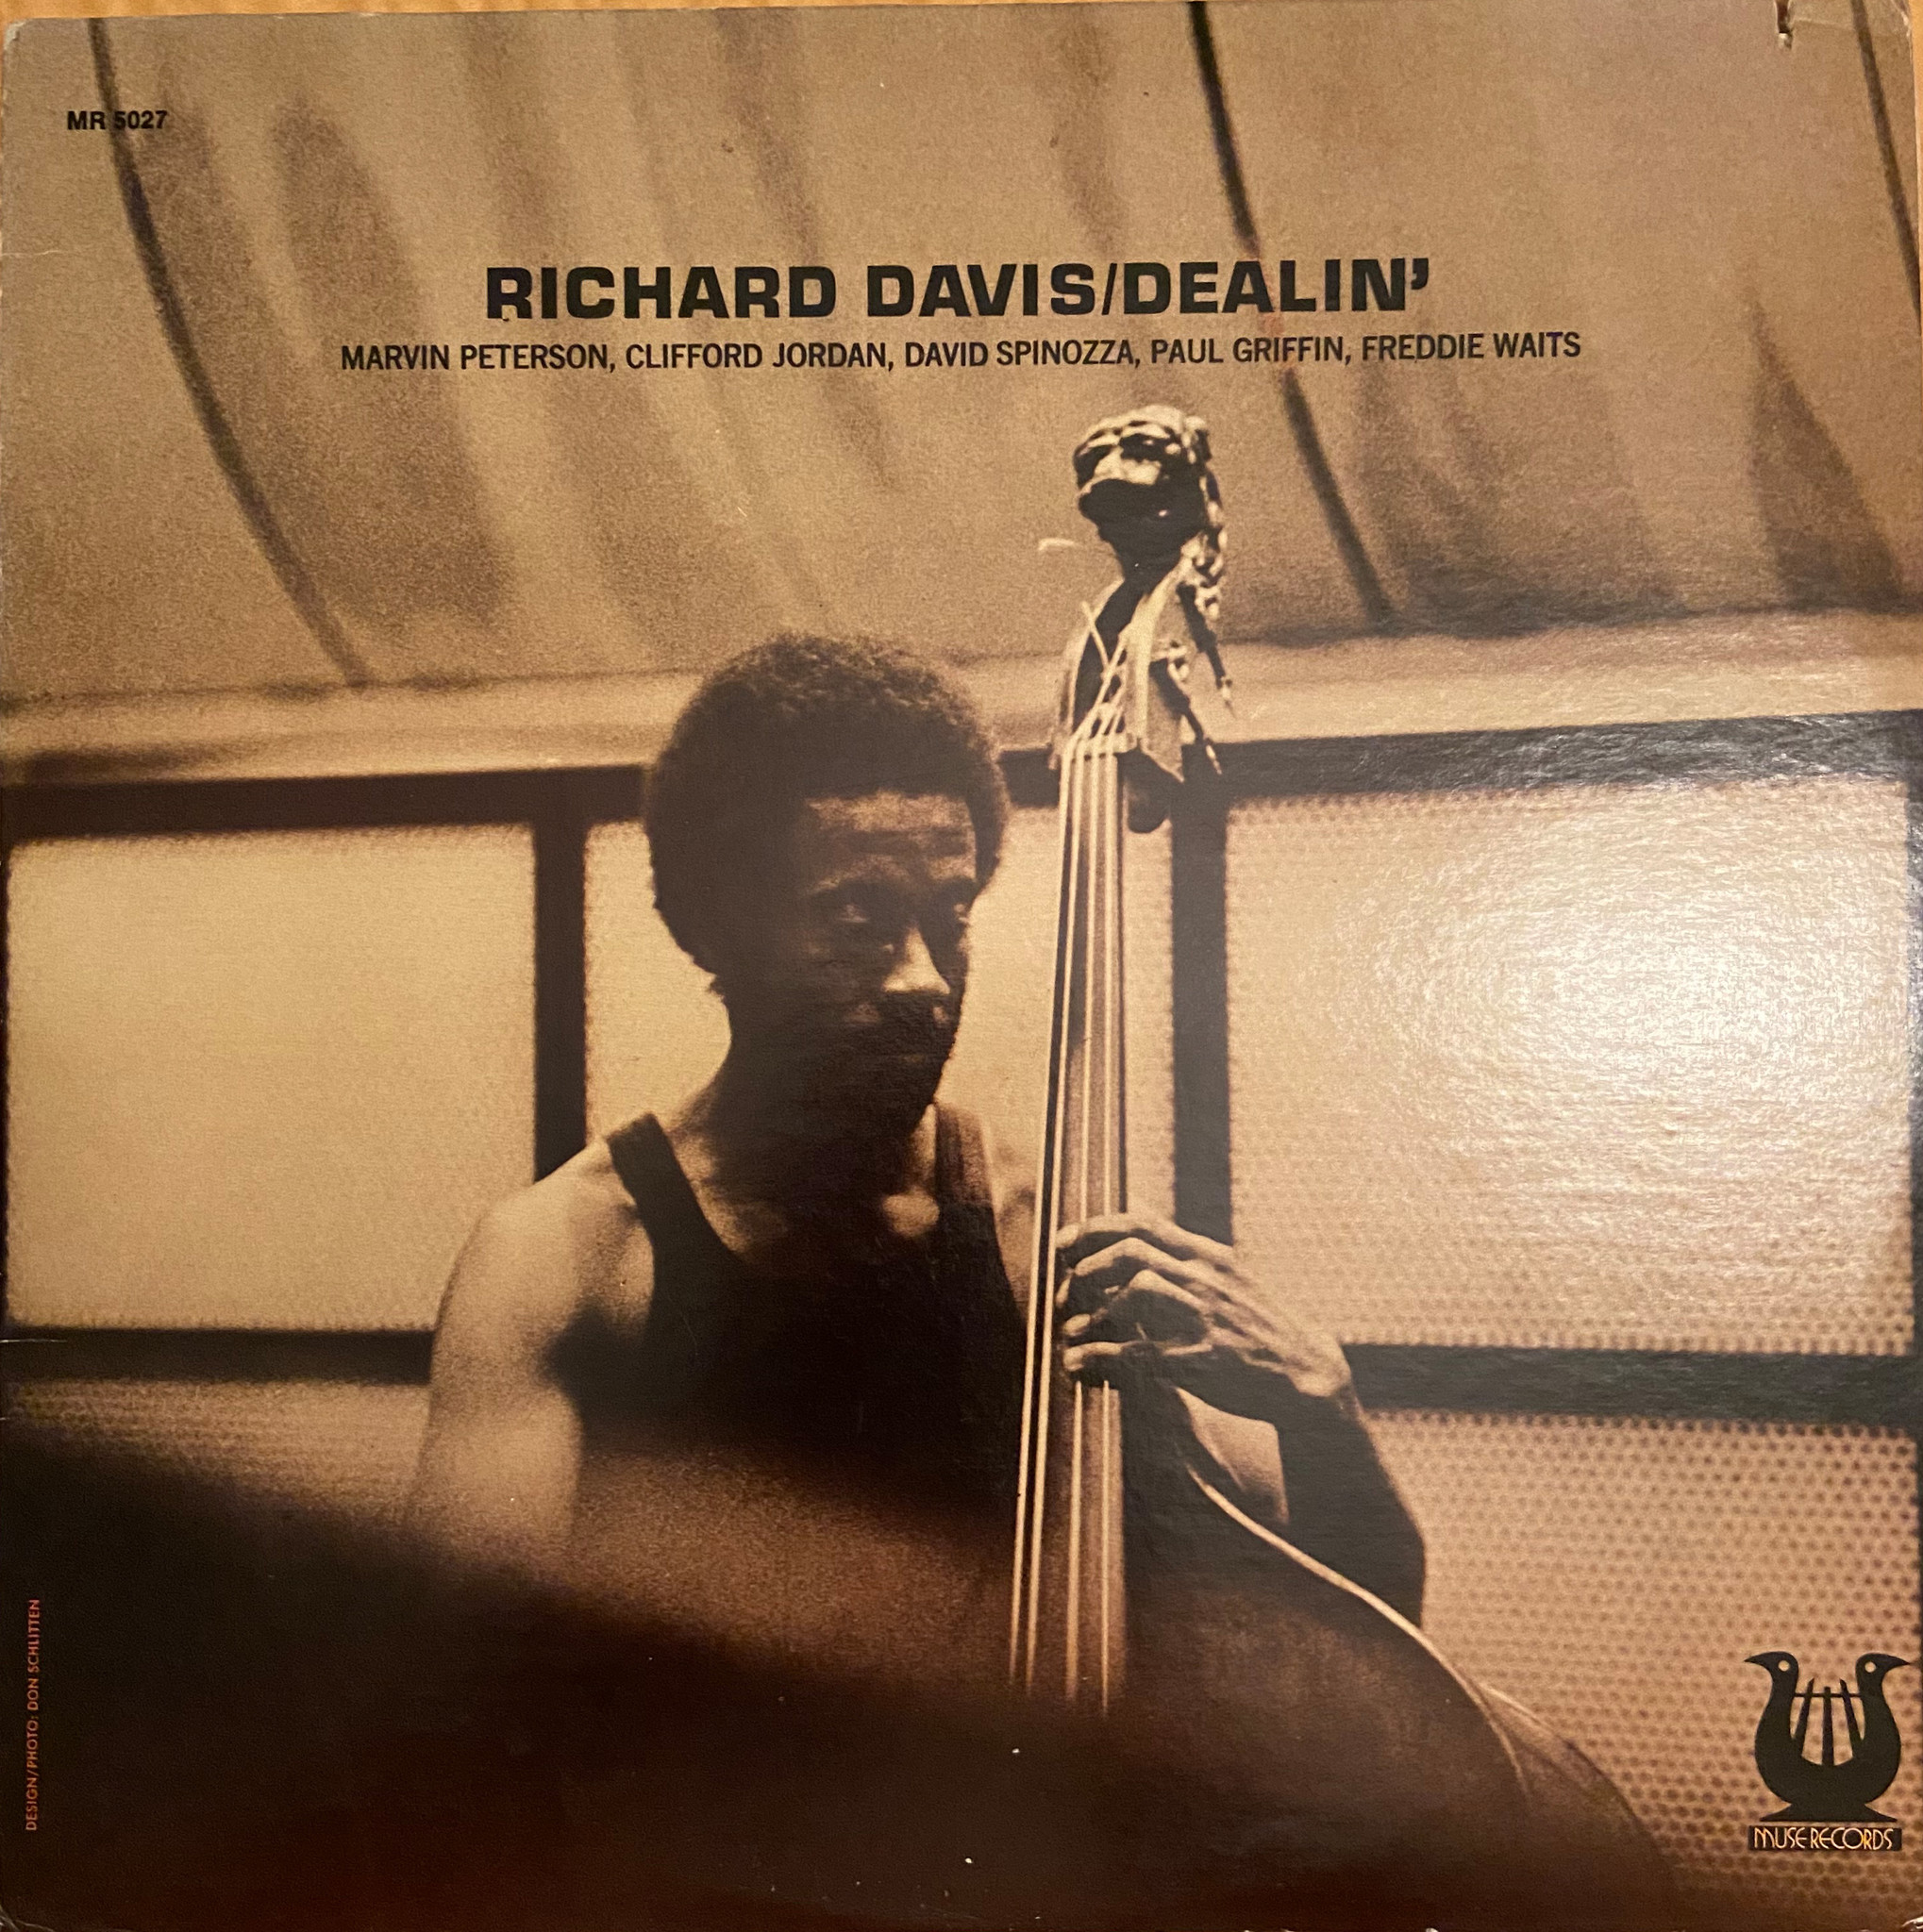 Richard Davis - Dealin'